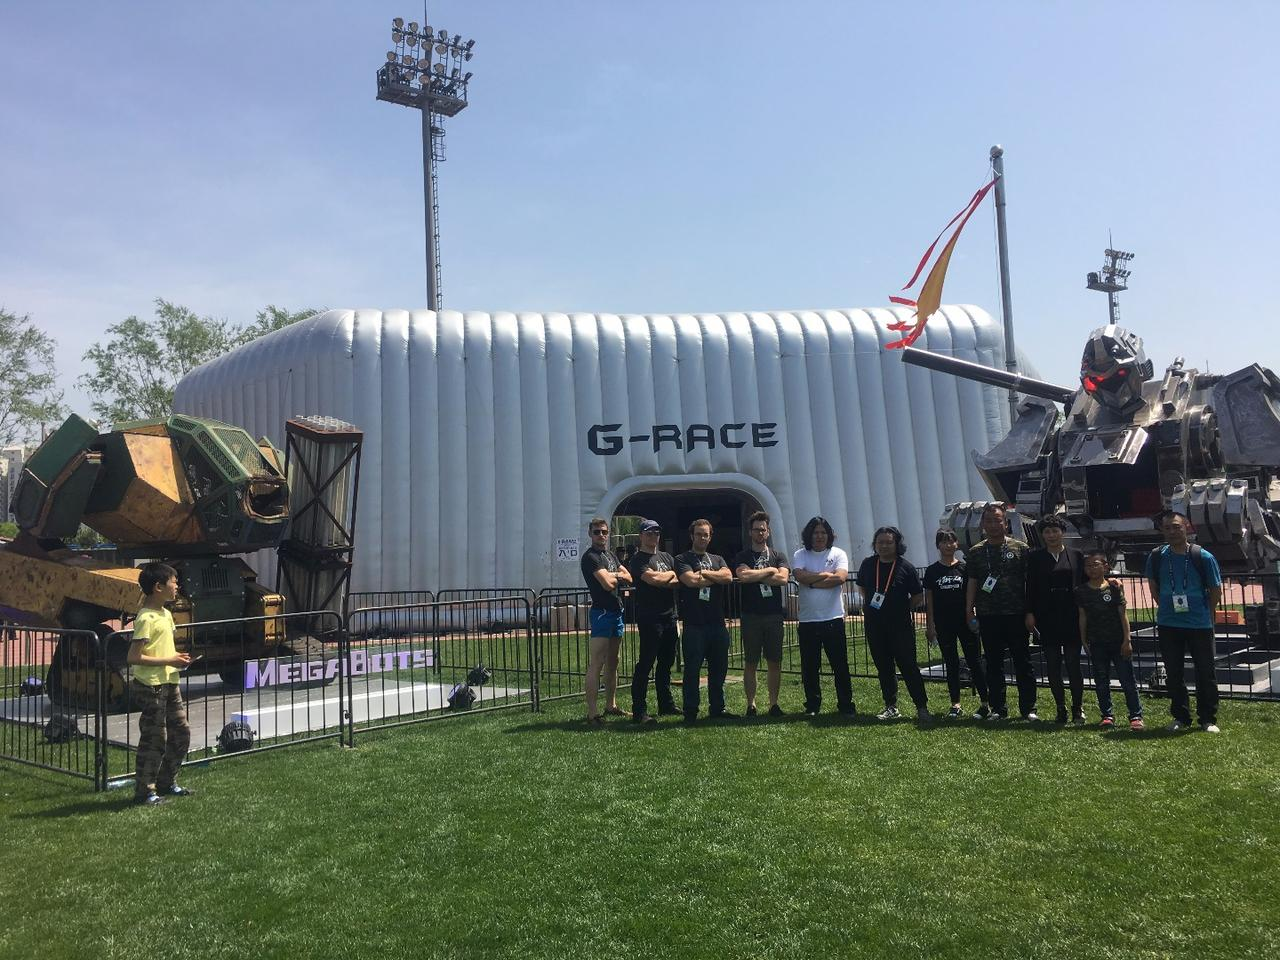 The MegaBots MkII with the Monkey King in Beijing, with both teams